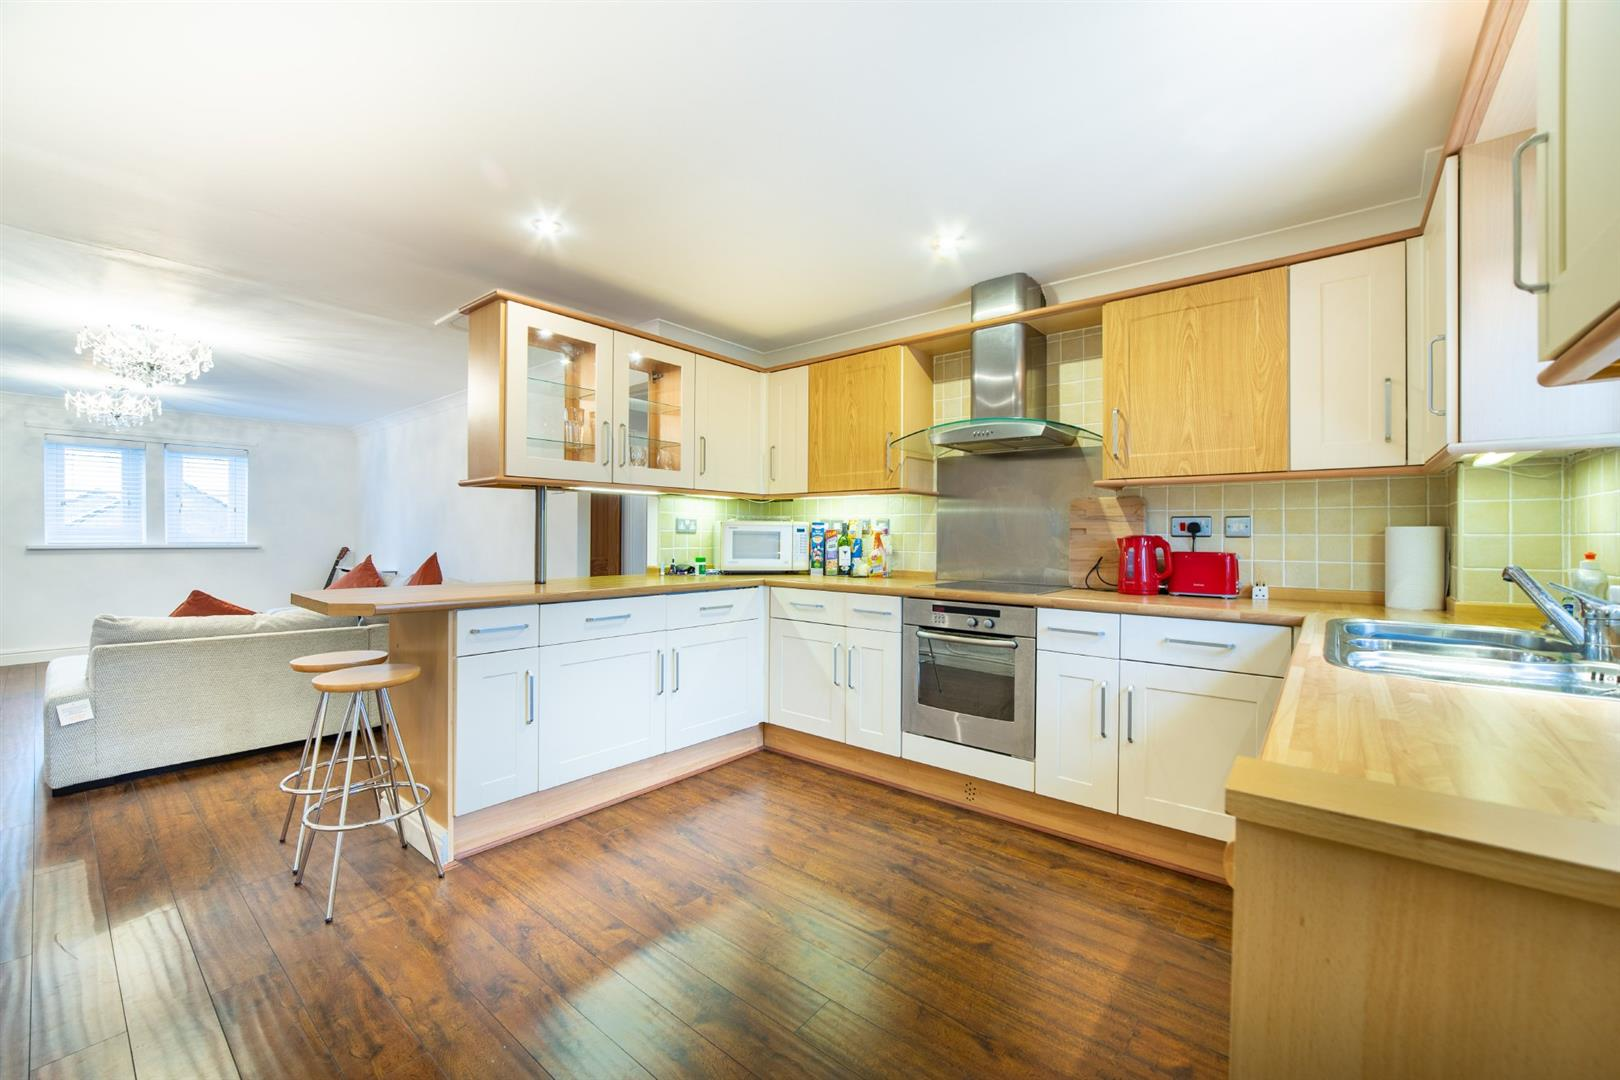 2 bed apartment for sale in Killingworth, NE12 6TE  - Property Image 1